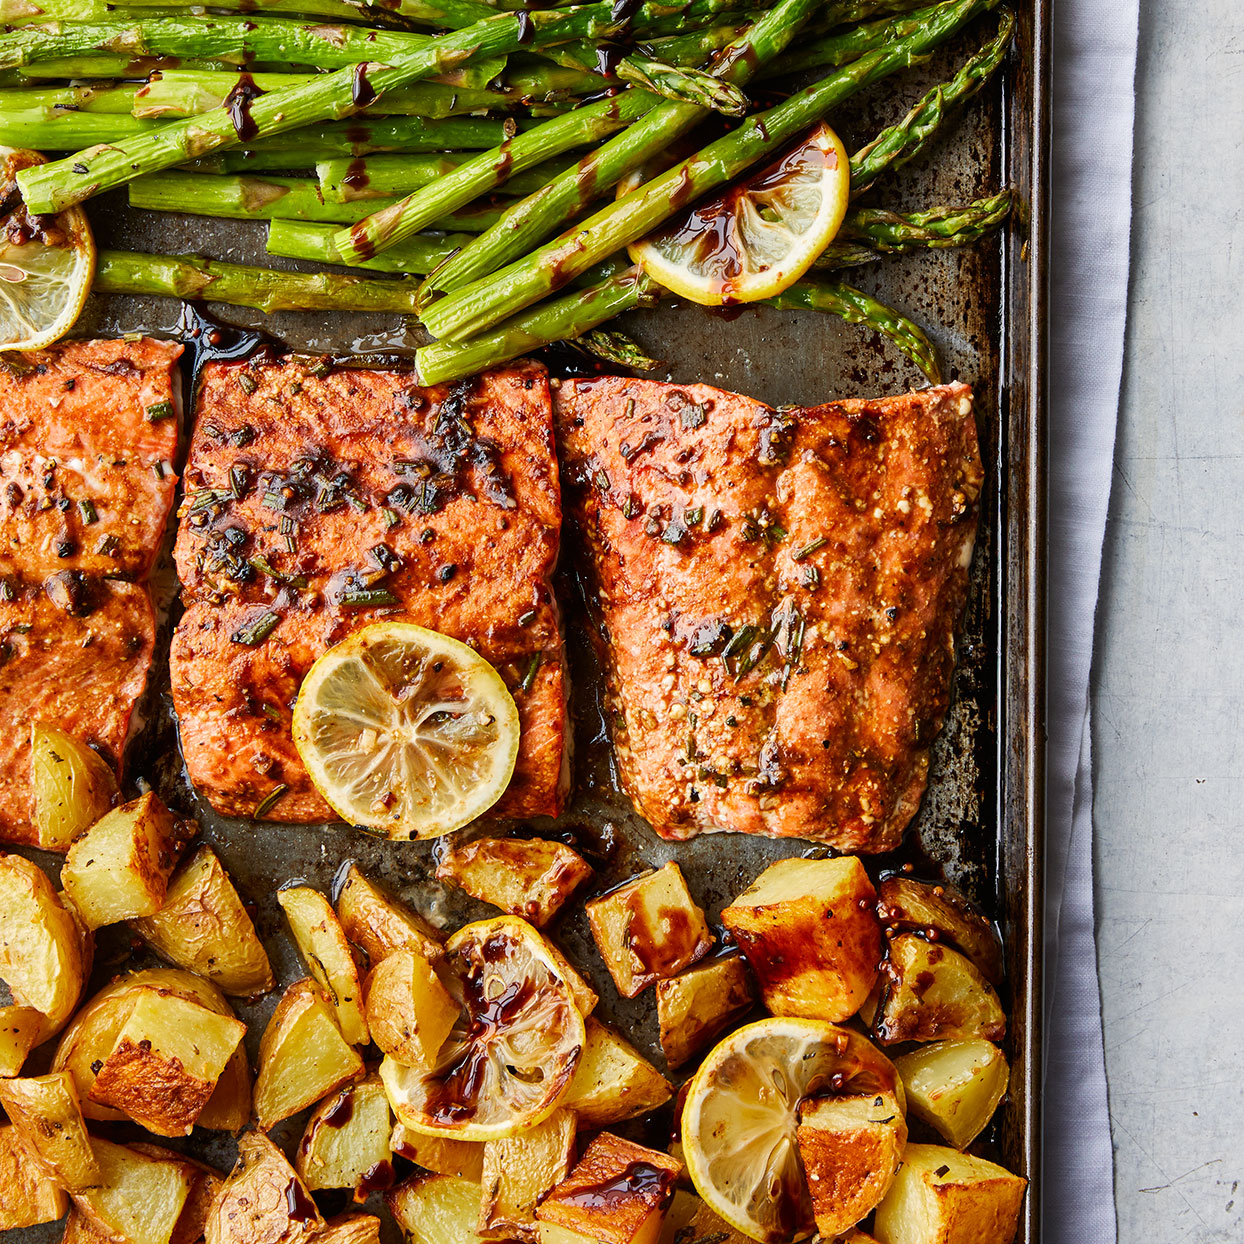 Yukon Golds are great here because they get crispy on the outside but completely creamy on the inside. A brush stroke or two of balsamic glaze provides a rich color and a sweet finish to the roasted salmon. Source: EatingWell Magazine, June 2020